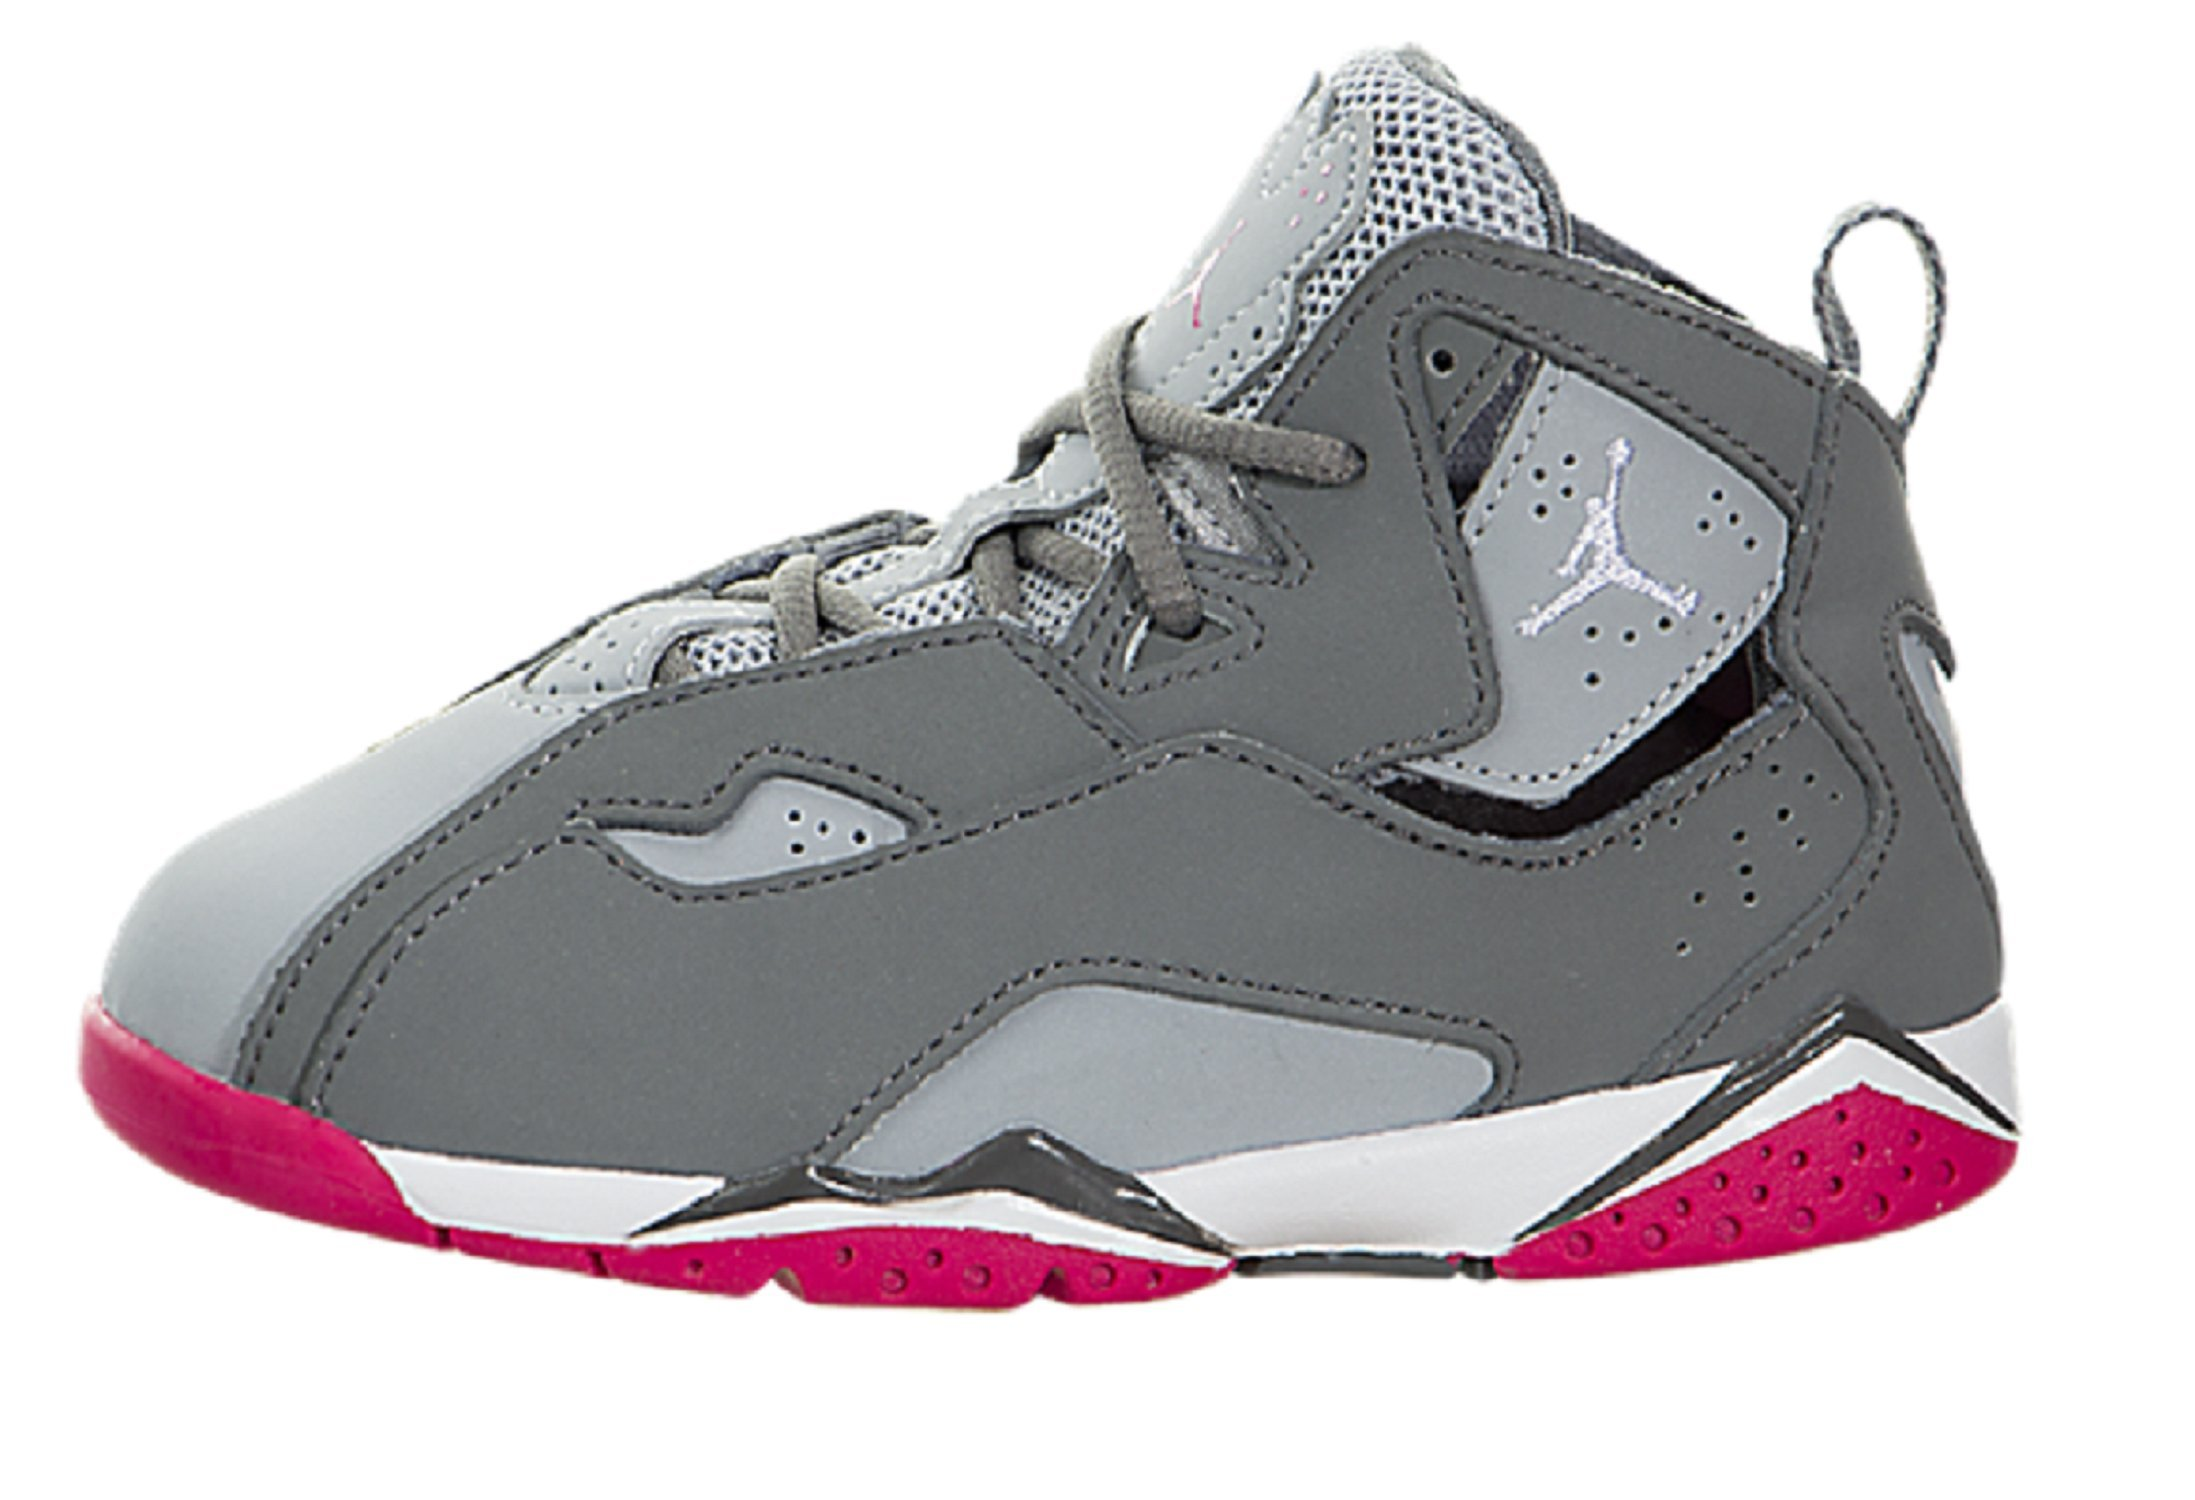 b917d474dc358 JORDAN TODDLER JORDAN TRUE FLIGHT GT GREY GREY PINK PINK SIZE 10